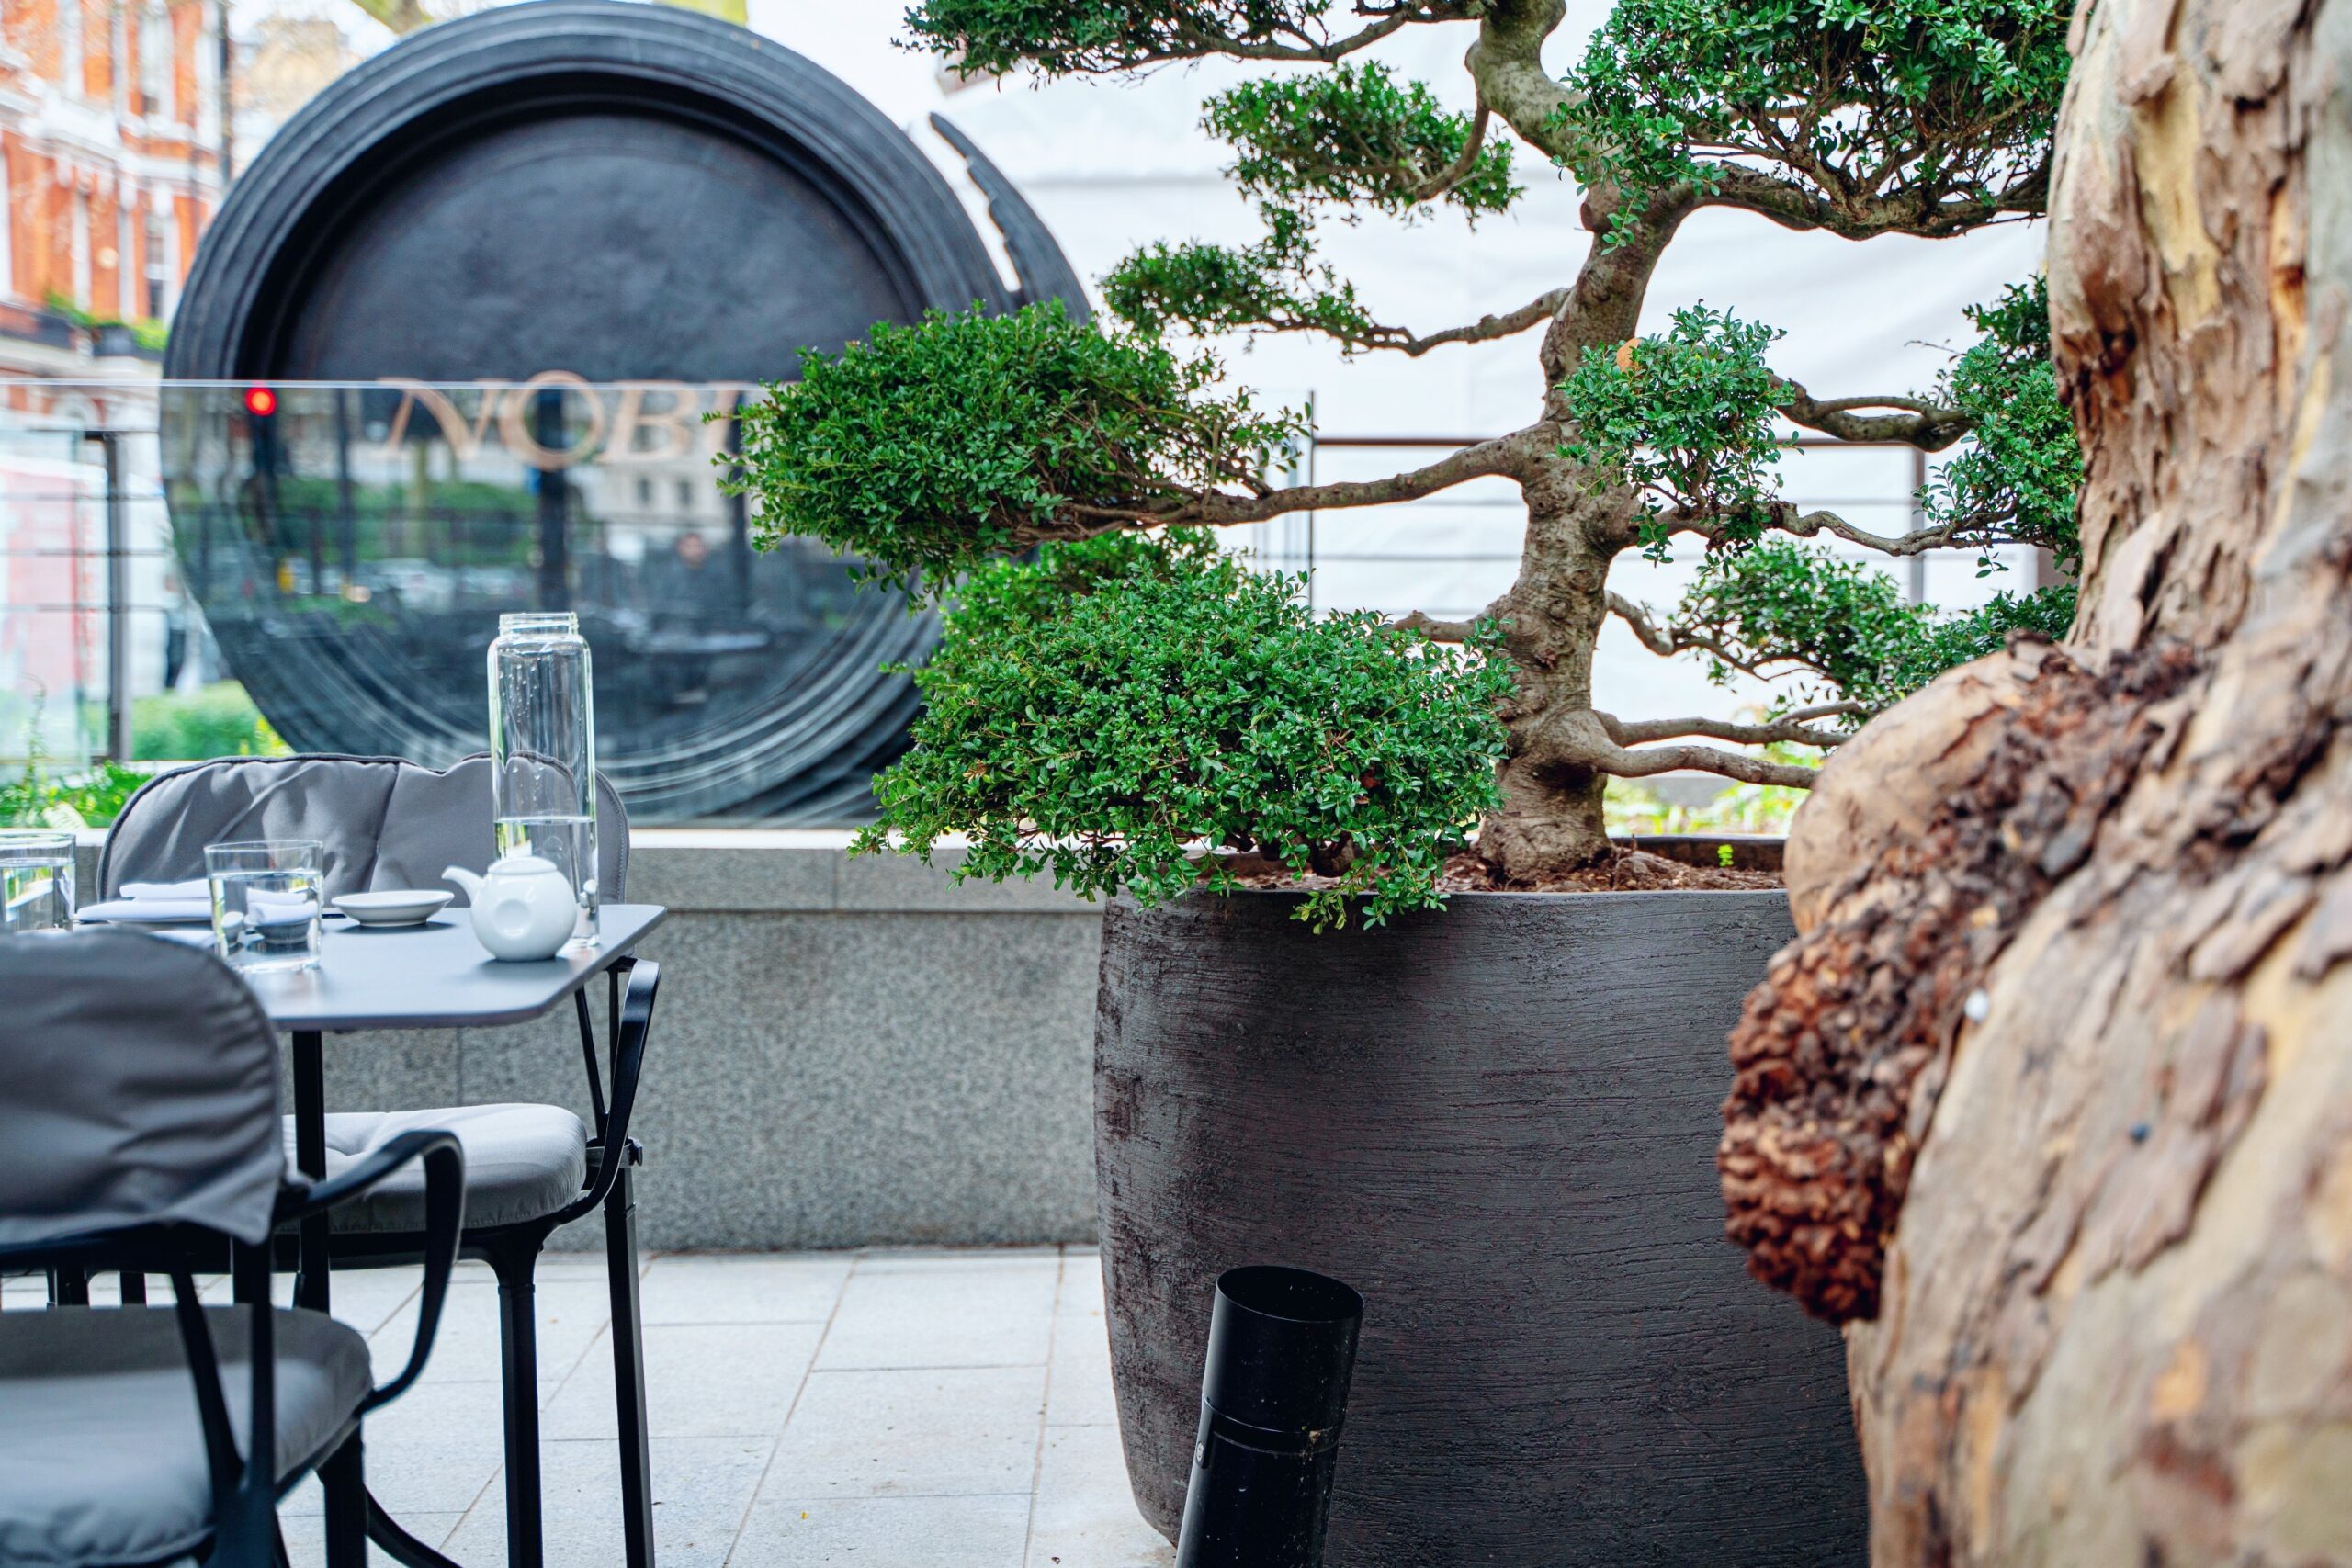 Enjoy exquisite dishes at Nobu Portman Square like Miso Cod, Seafood Ceviche and Yellowtail Jalapeño - on the terrace from  April 12th and in the restaurant from May 17th